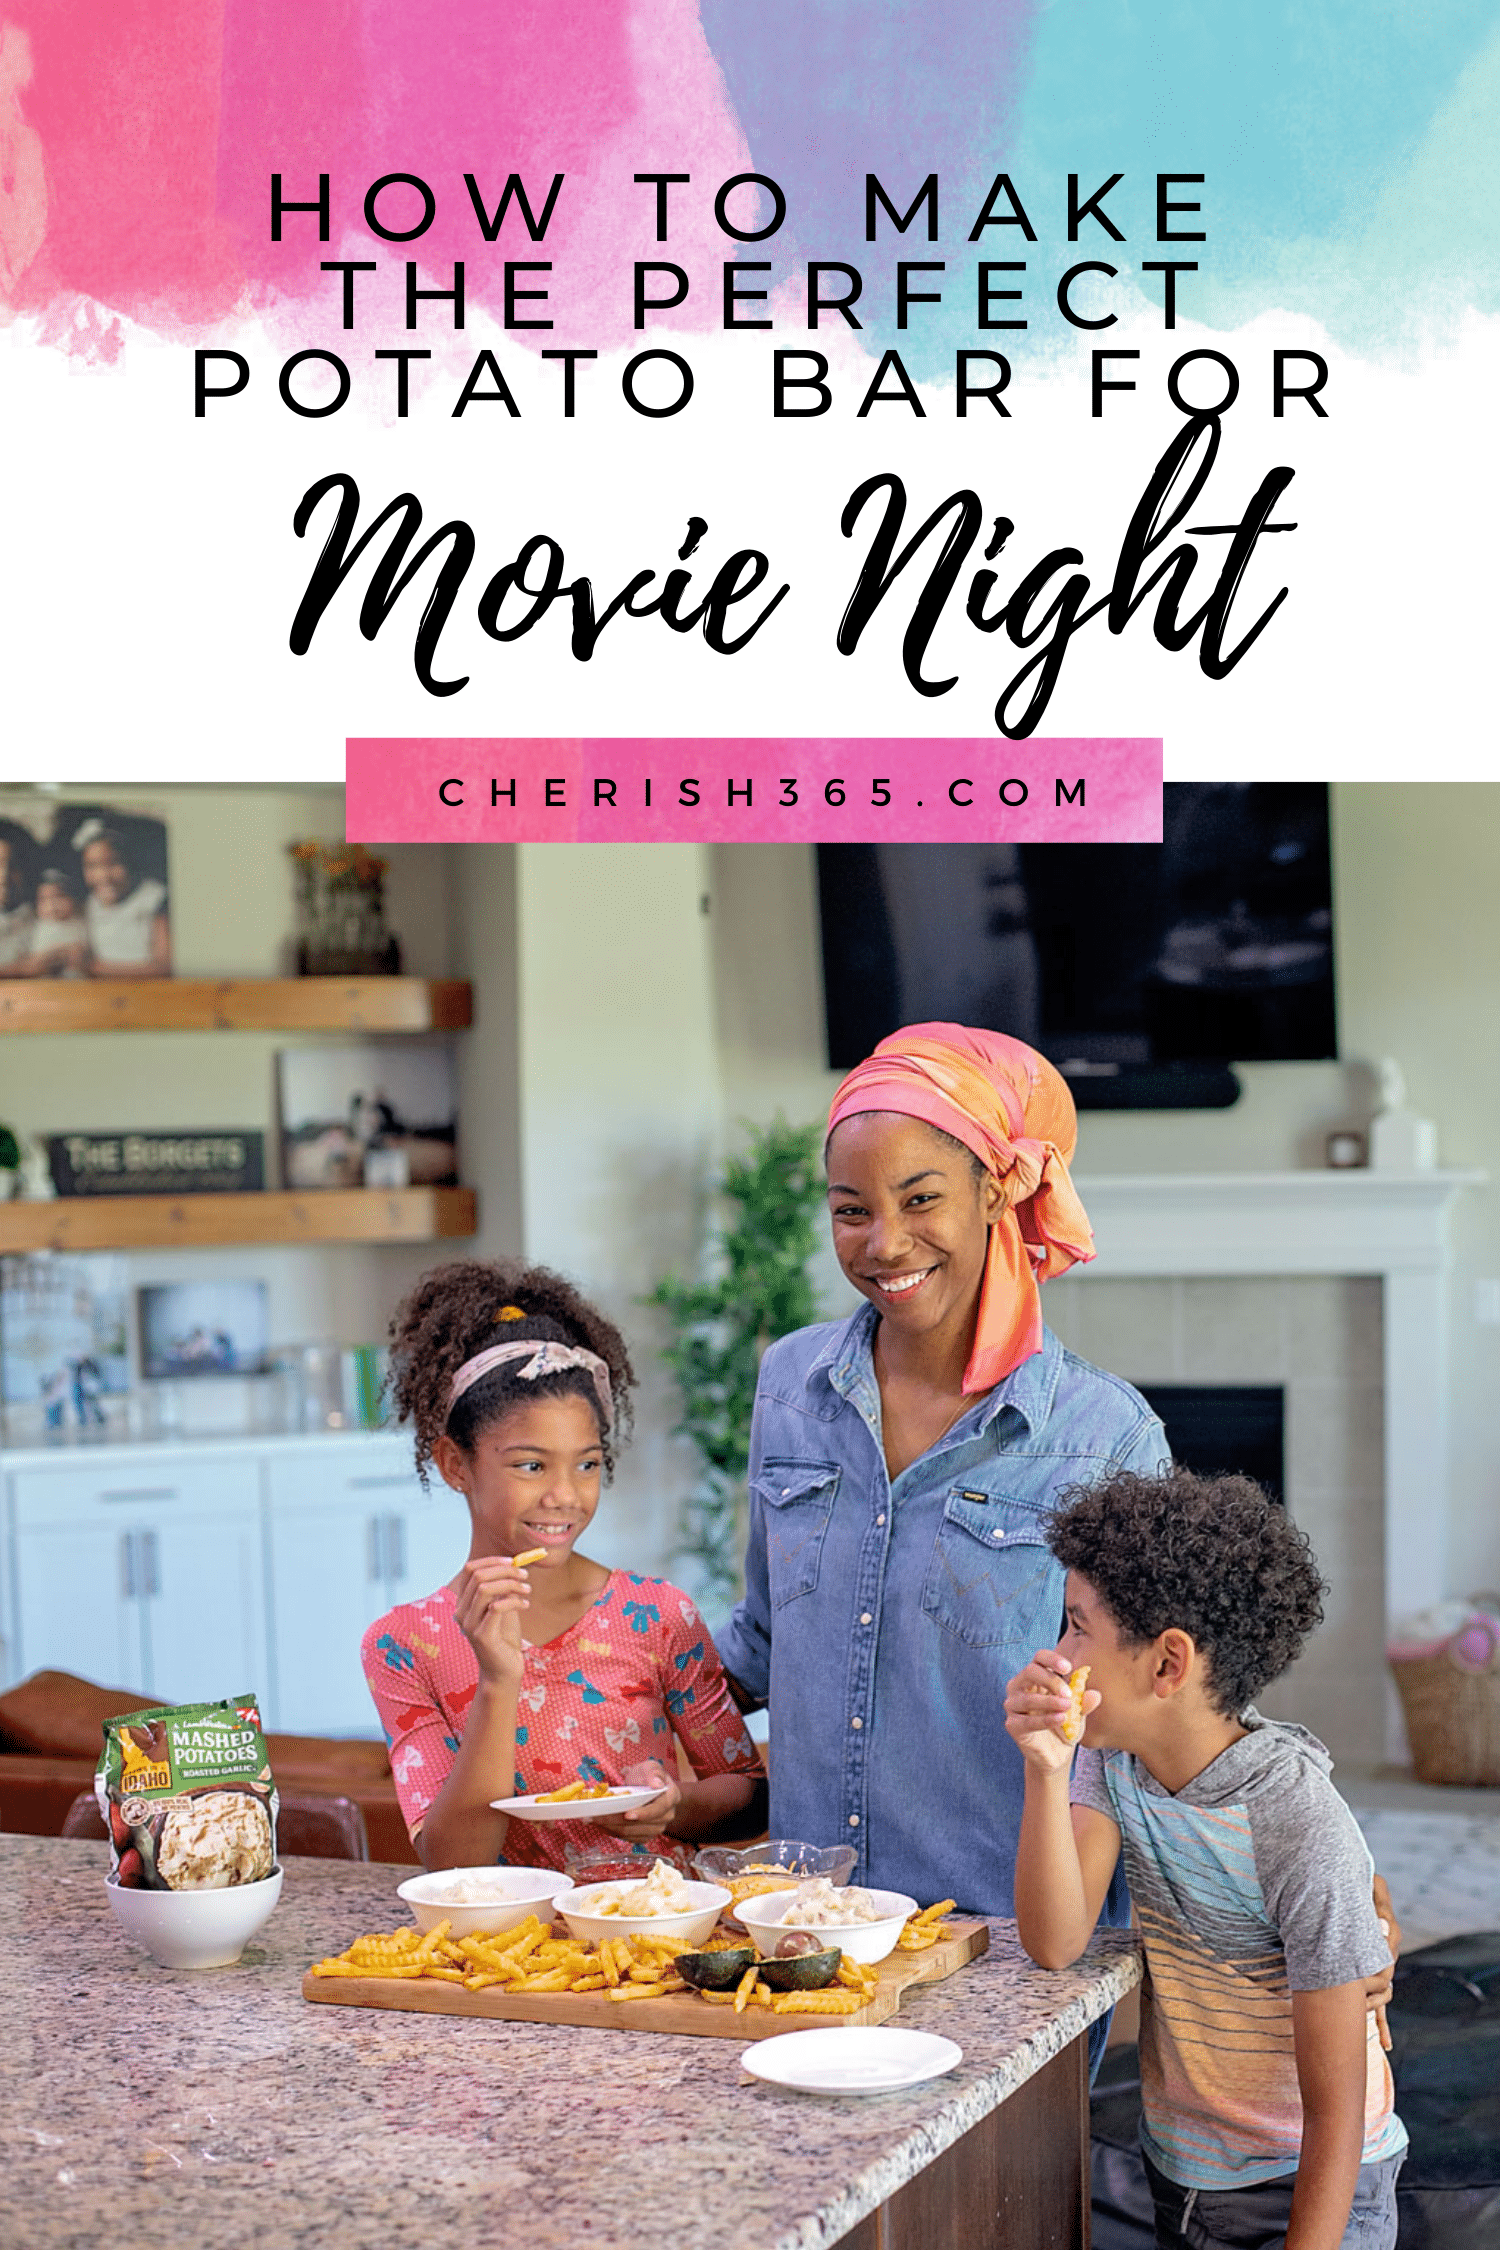 How to Make the Perfect Potato Bar for Movie Night